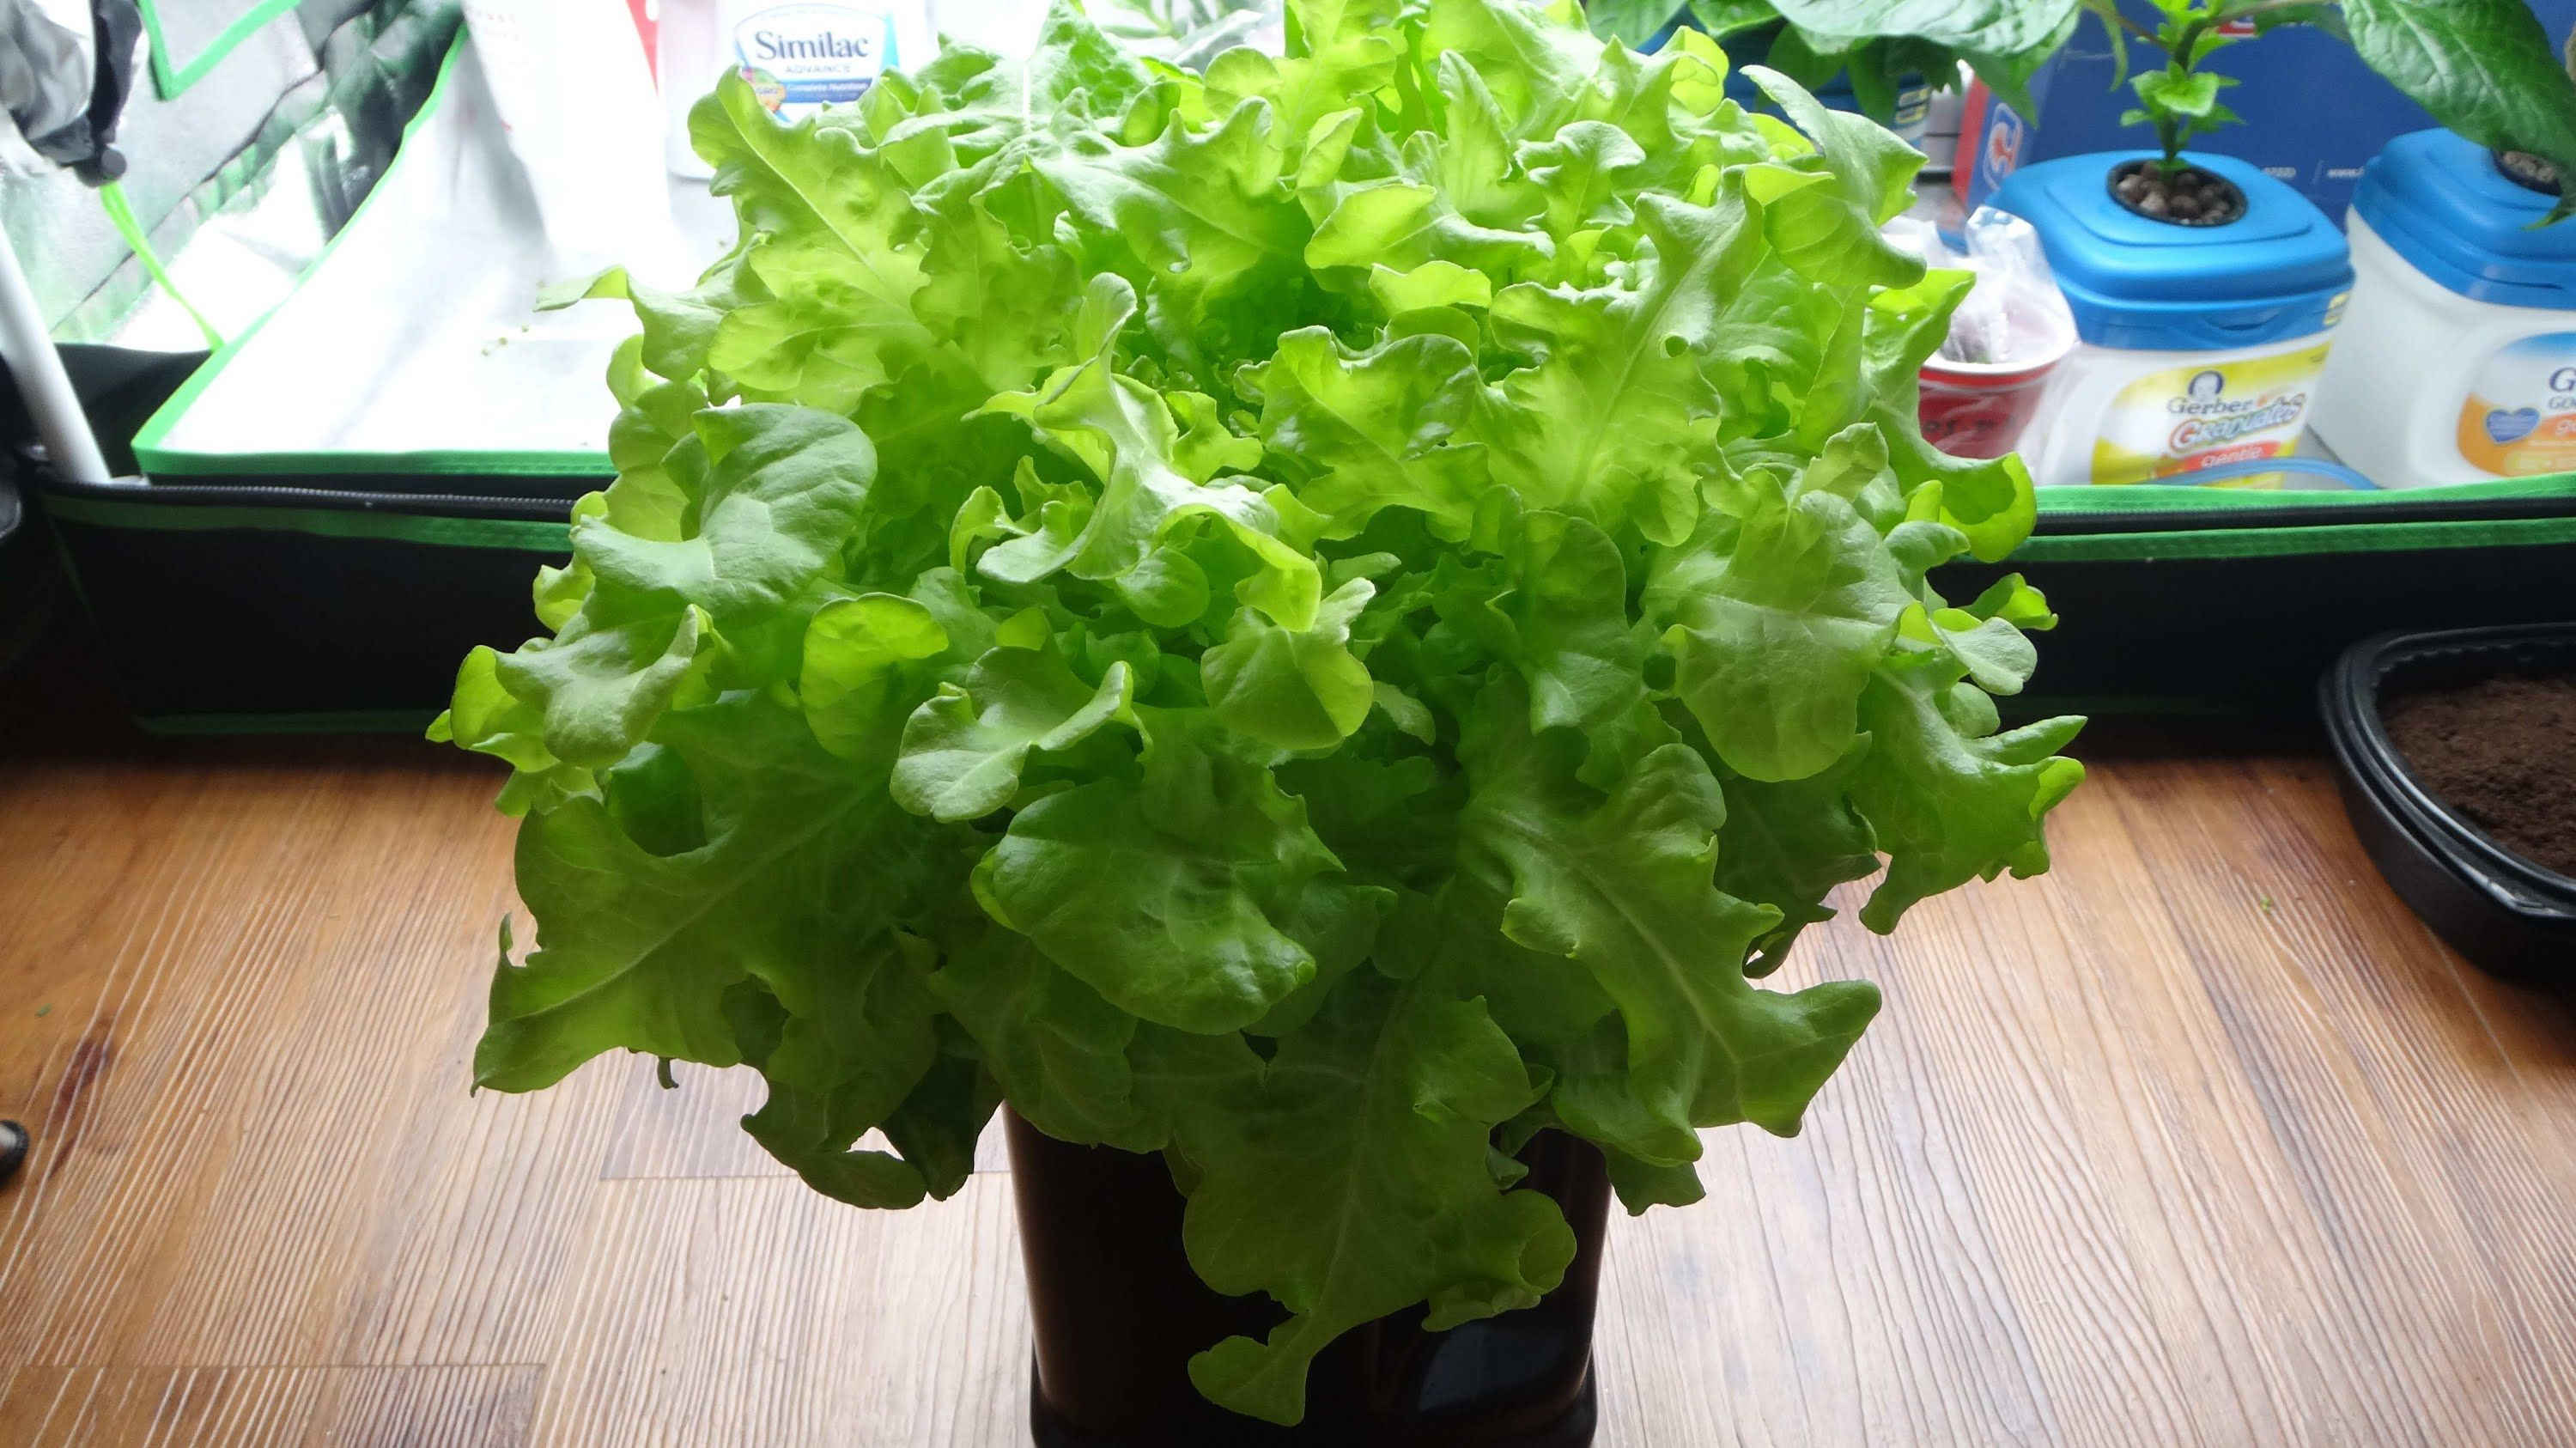 How To Make A Mini Kratky Hydroponic System For Lettuce